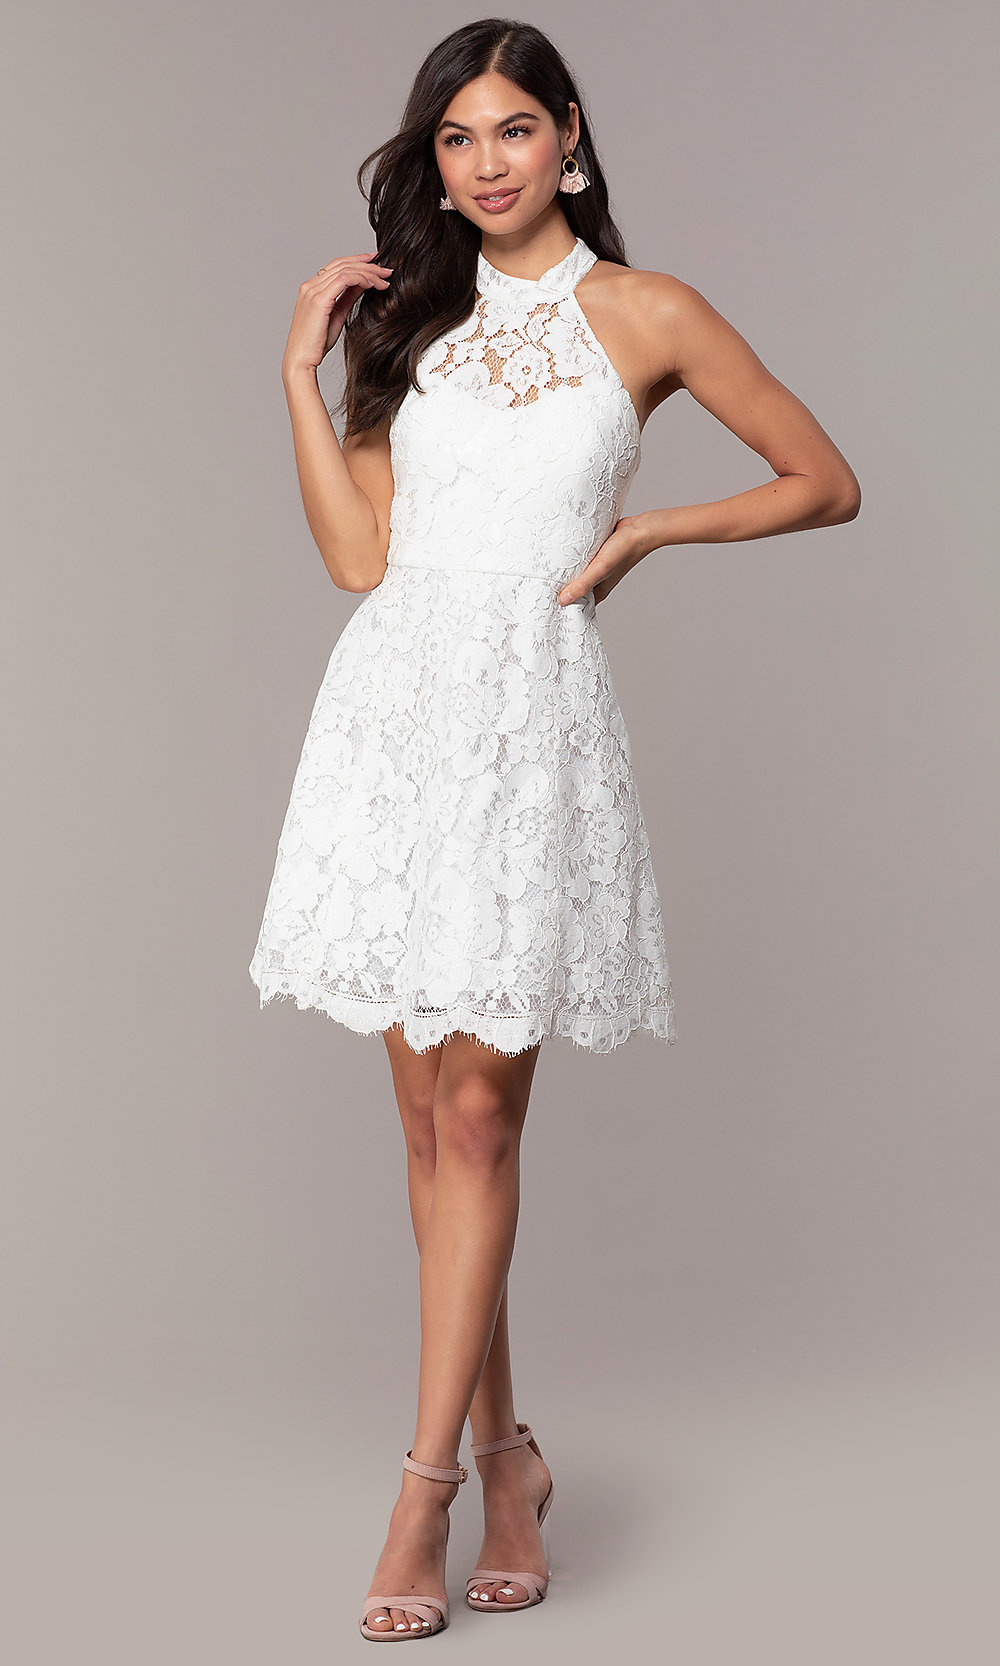 e4e05e2ede30 Image of white lace high-neck short graduation party dress. Style  DMO-.  Tap to expand